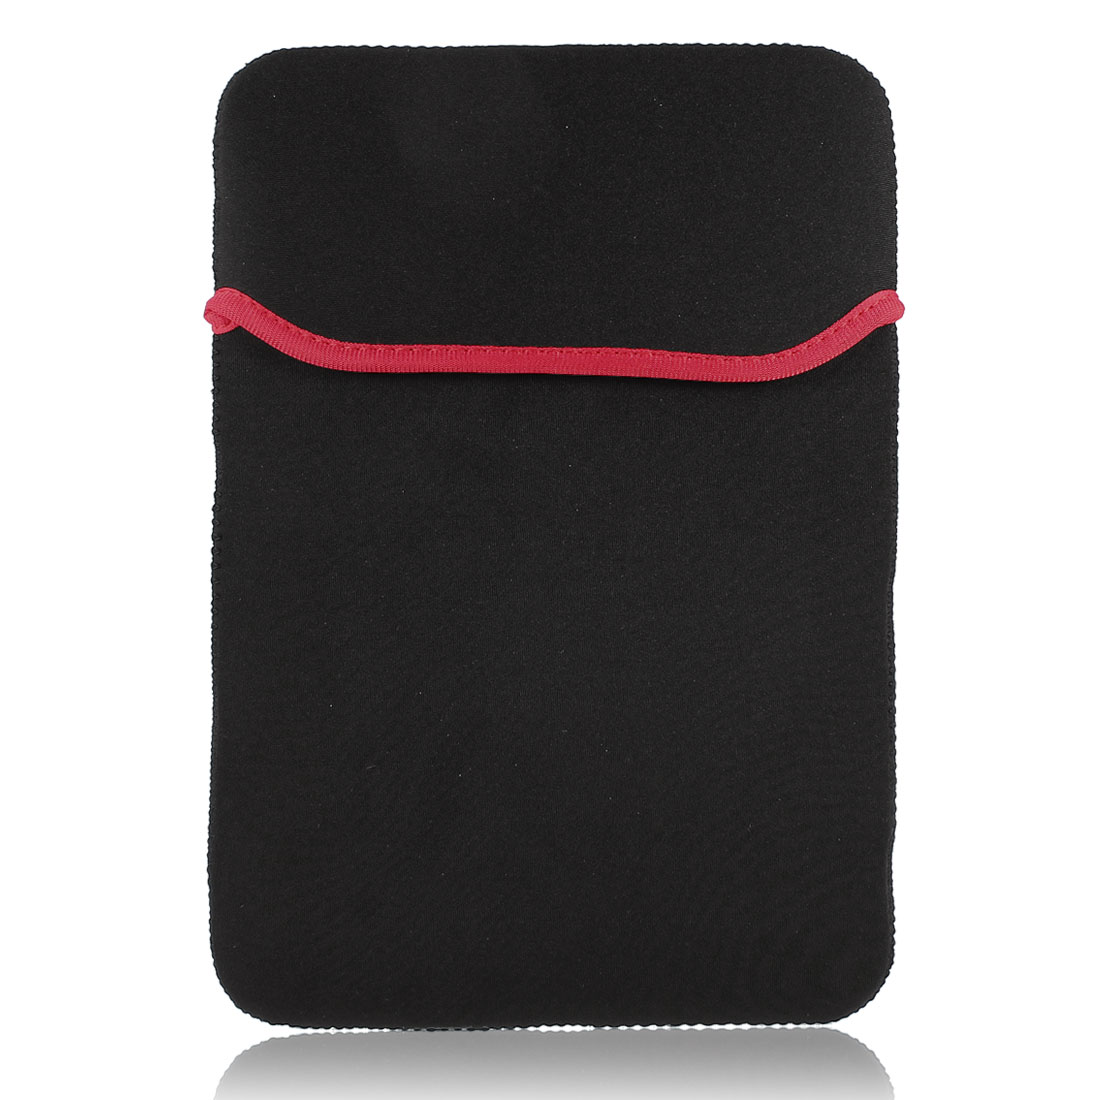 "10"" 10.1"" 10.2"" Black Neoprene Notebook Laptop Sleeve Bag Cover for TouchPad"